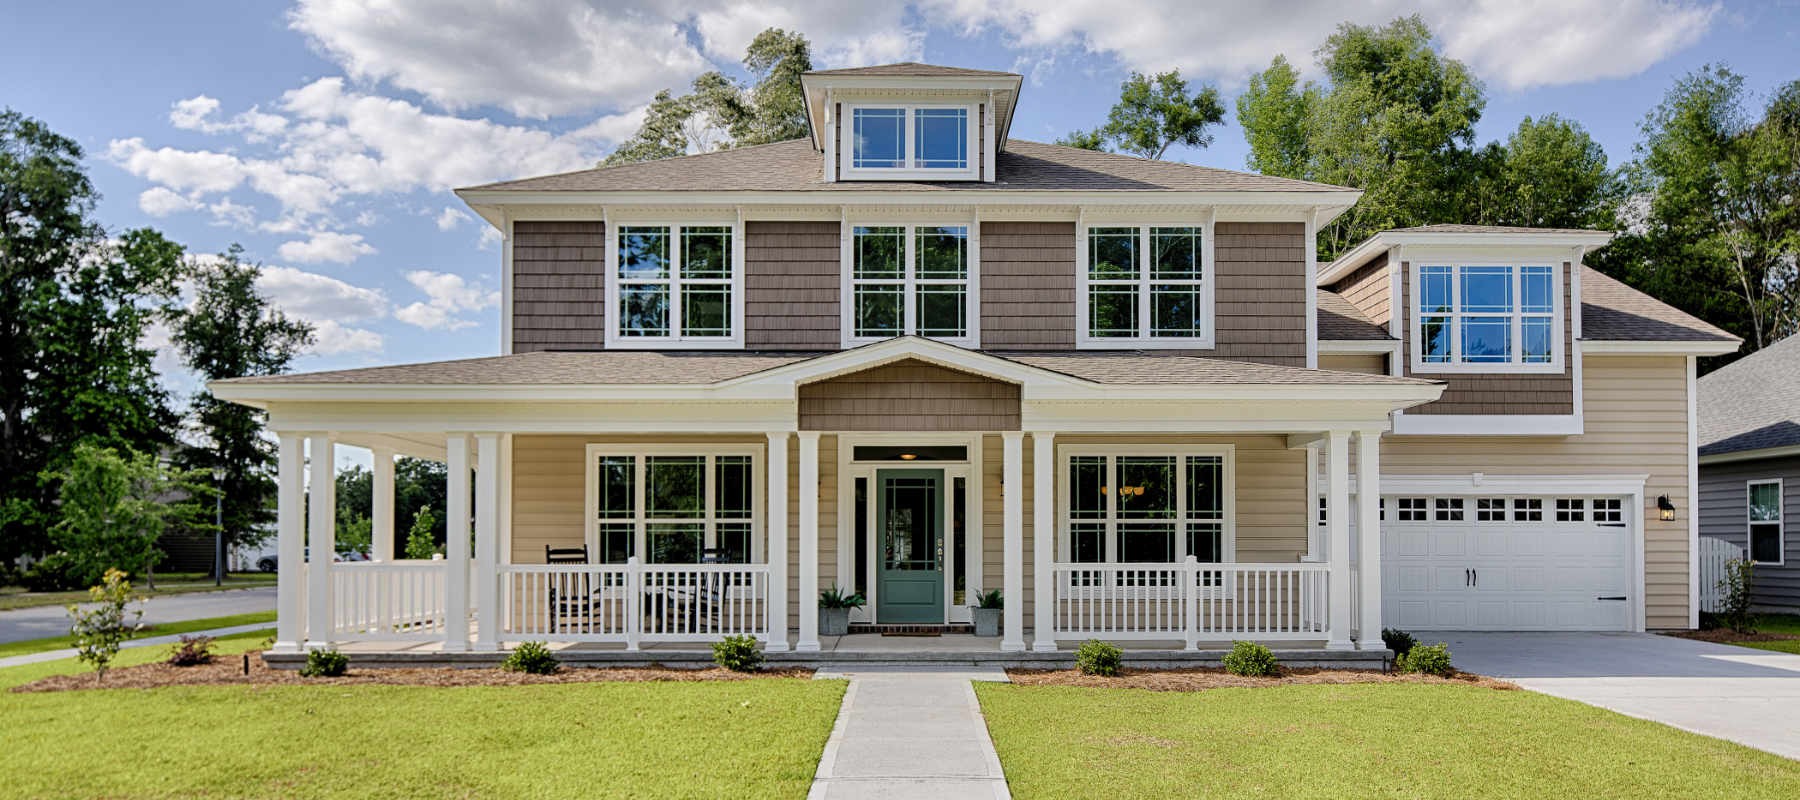 Bouy Brothers Builders Savannah Ga New Homes And Townhomes